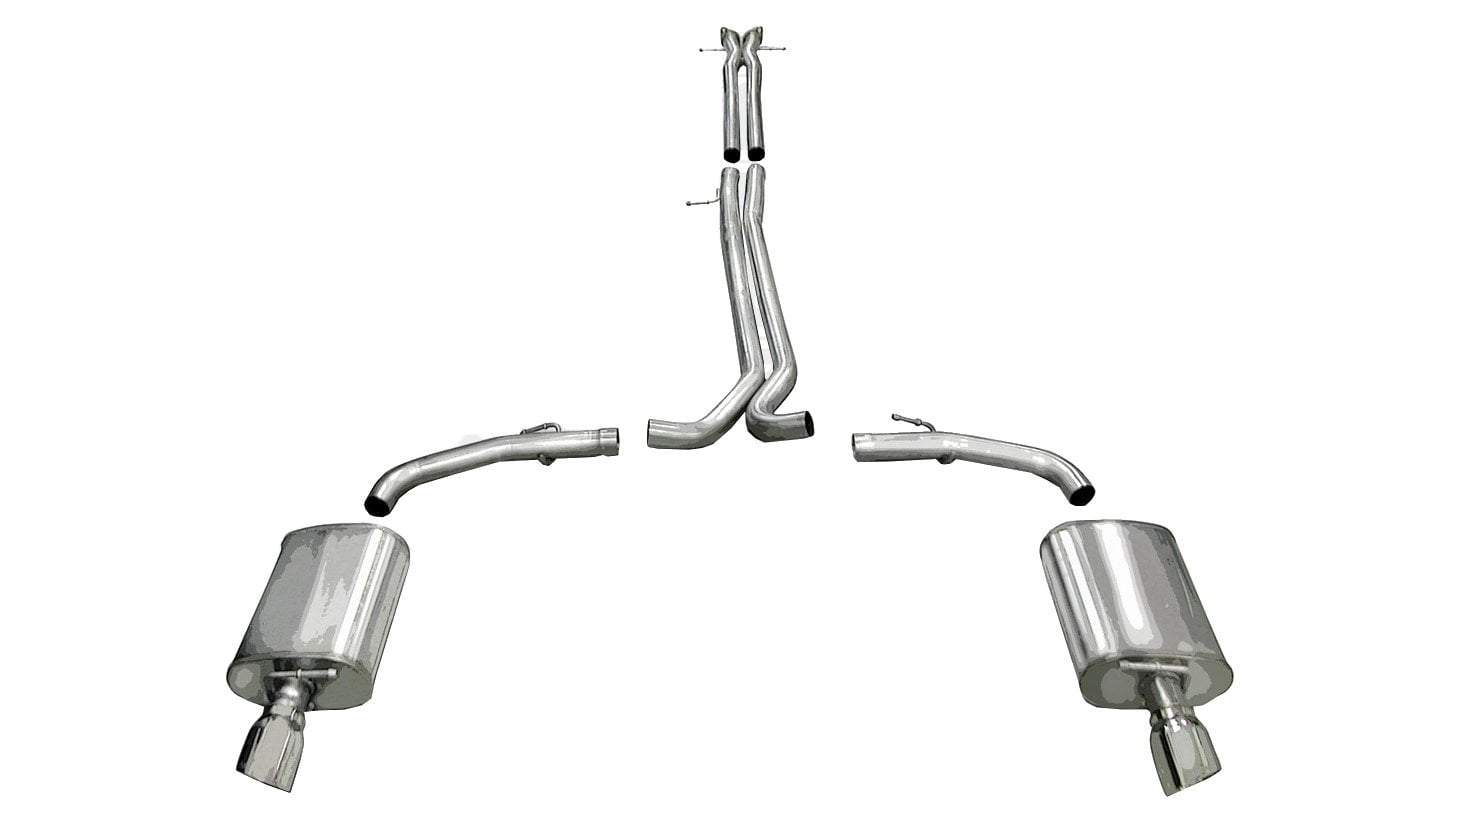 "CORSA PERFORMANCE Cat-Back Exhaust Polished / Sport / Dual Rear - Single 4.0in 2010-2018 Ford Taurus Sho 2.5"" Dual Rear Exit Catback Exhaust System with Single 4.0"" Tips (14315) Sport Sound Level"